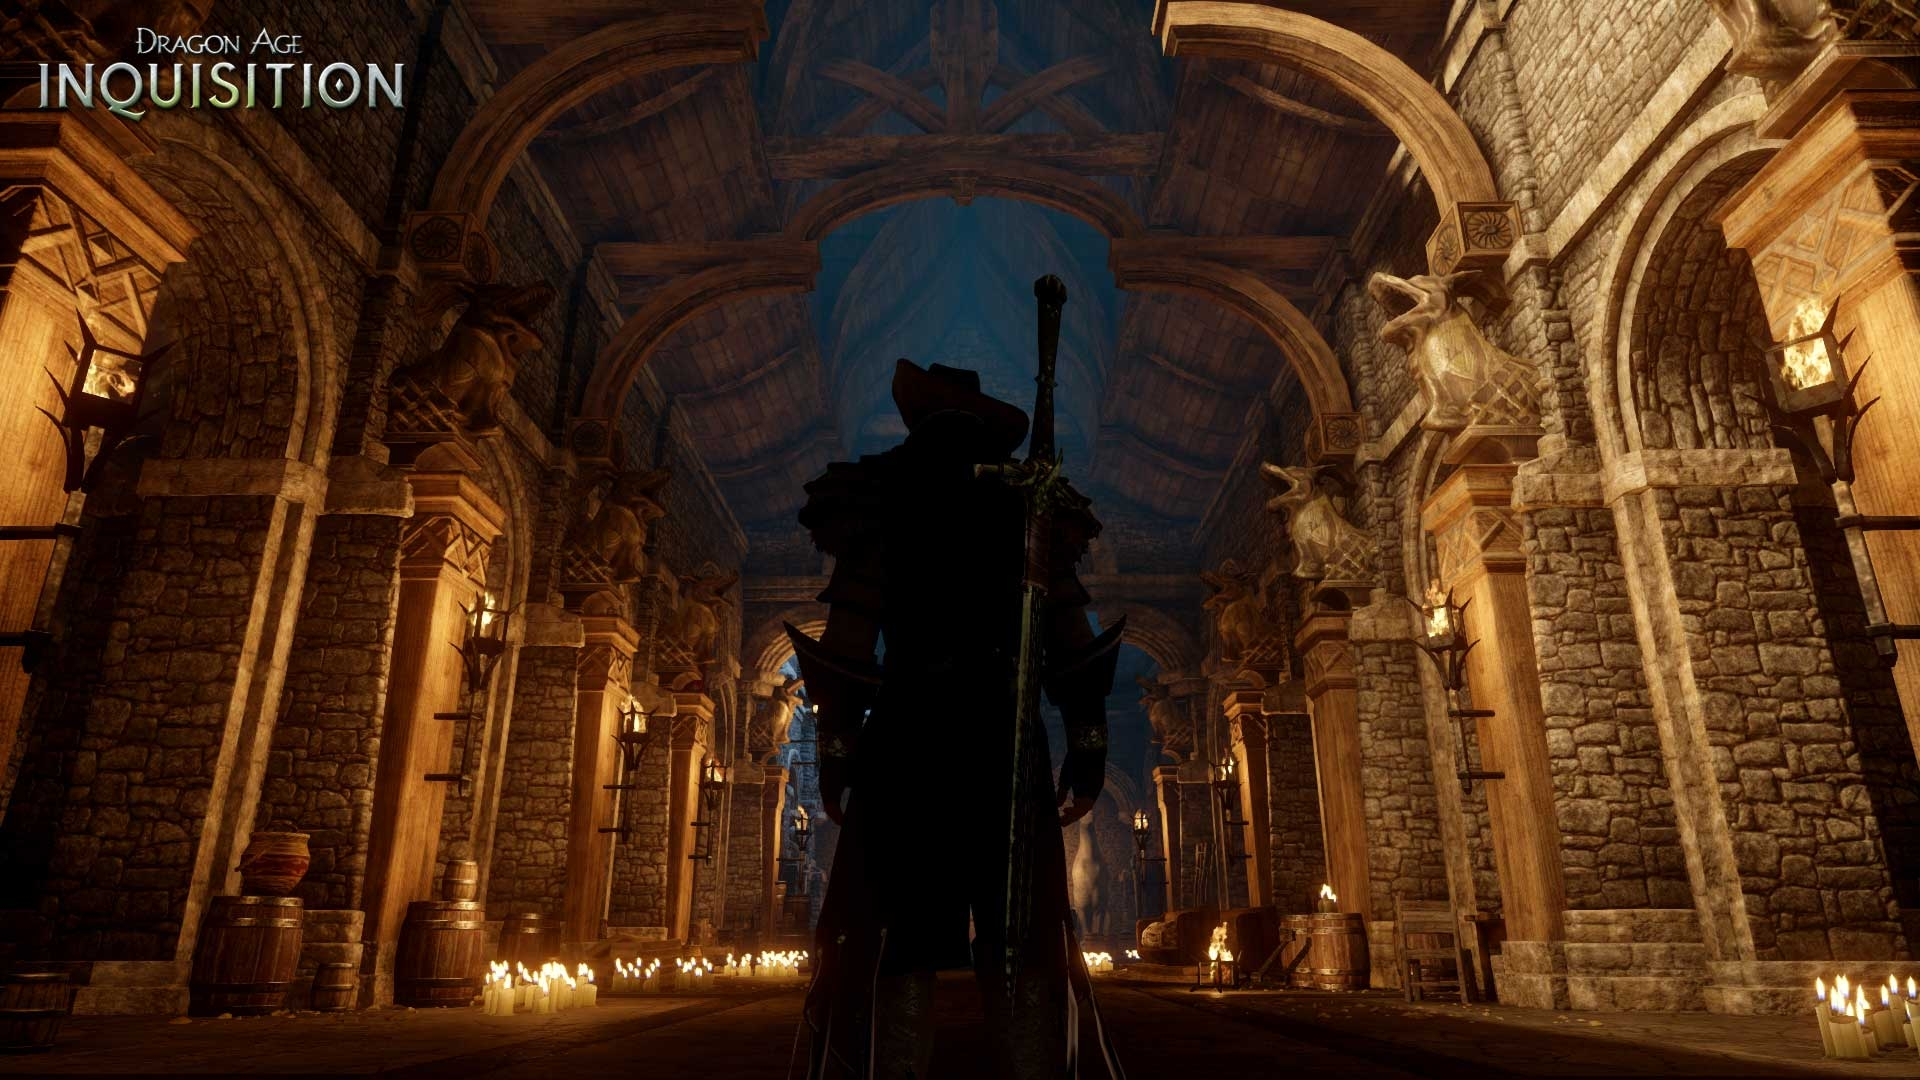 Dragon Age: Inquisition Wallpapers, Pictures, Images